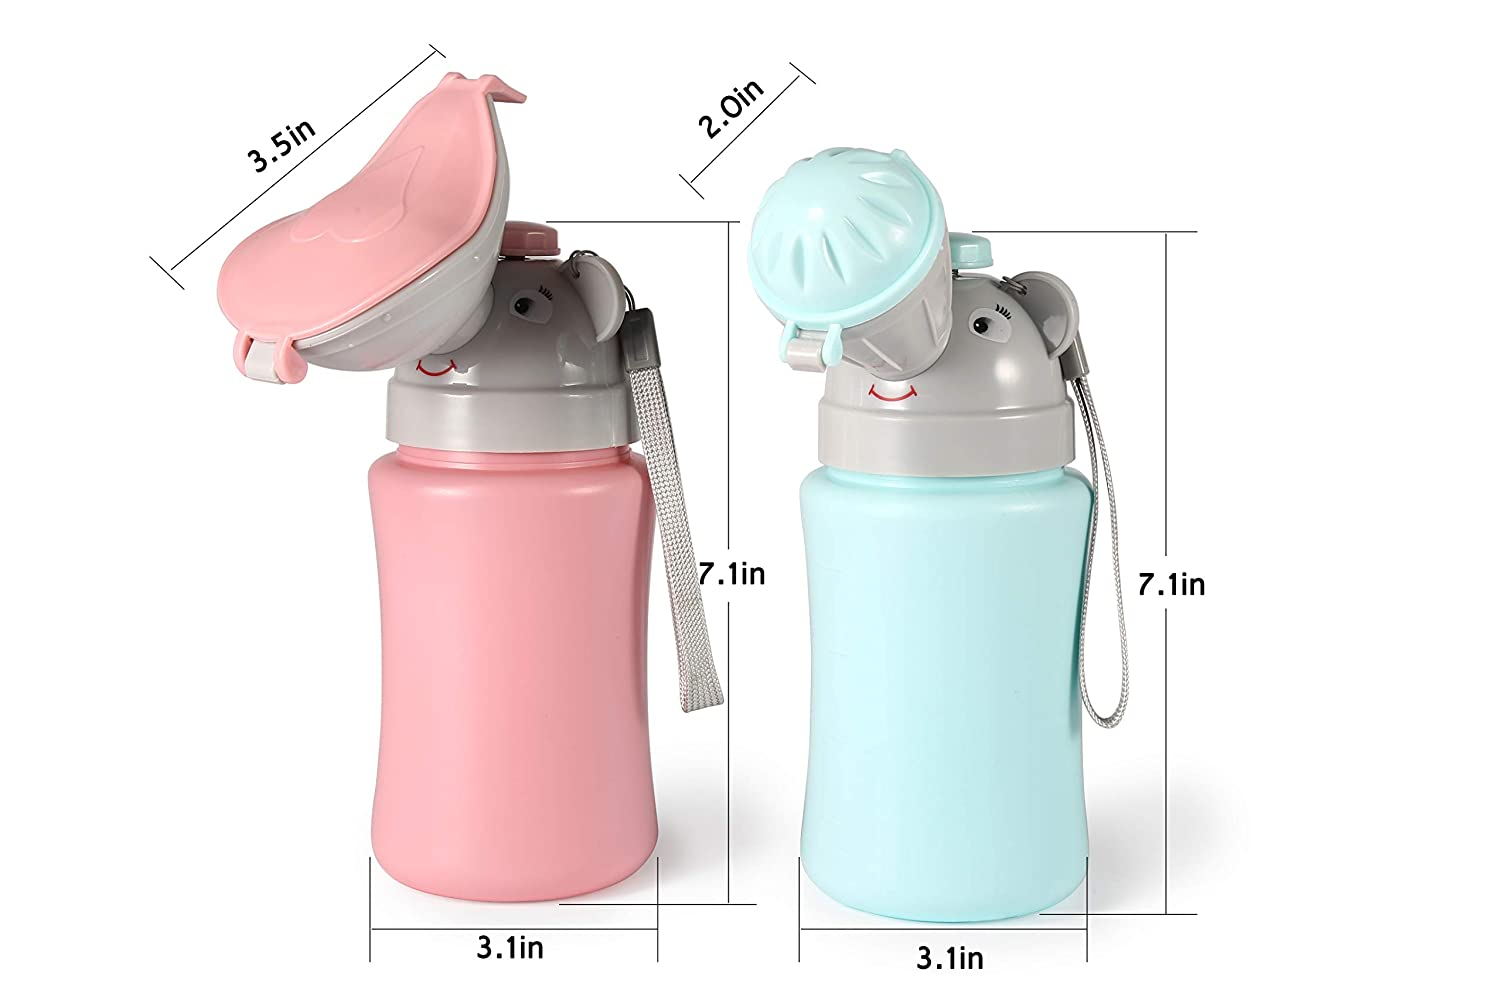 Blue ONEDONE Portable Baby Child/Potty/Urinal Emergency Toilet for Camping Car Travel and Kid Potty Pee Training